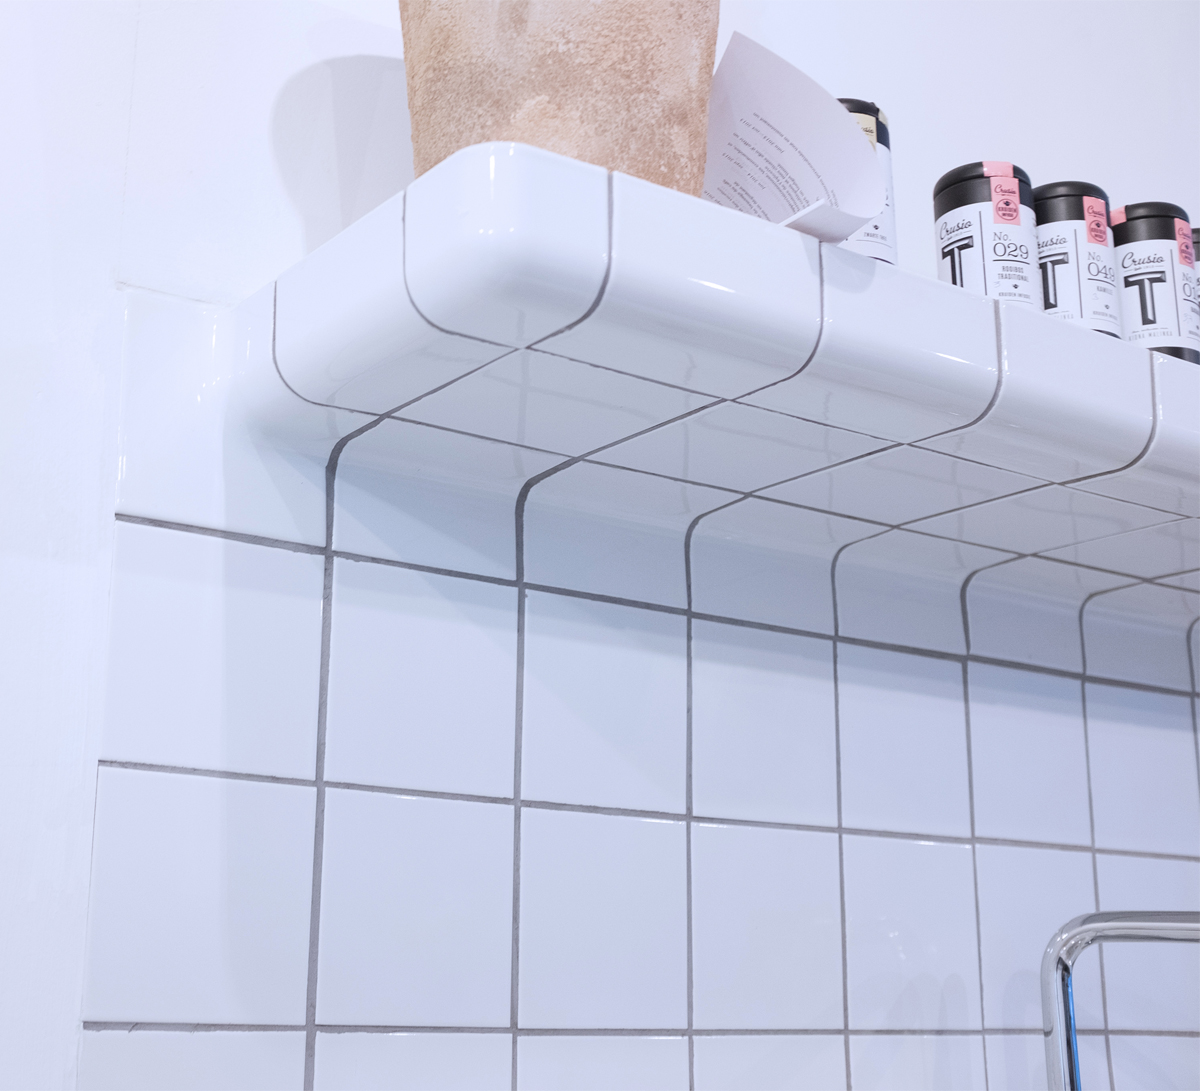 tiled shelf with rounded corners, tiling with three-dimensional construction and functional tiles